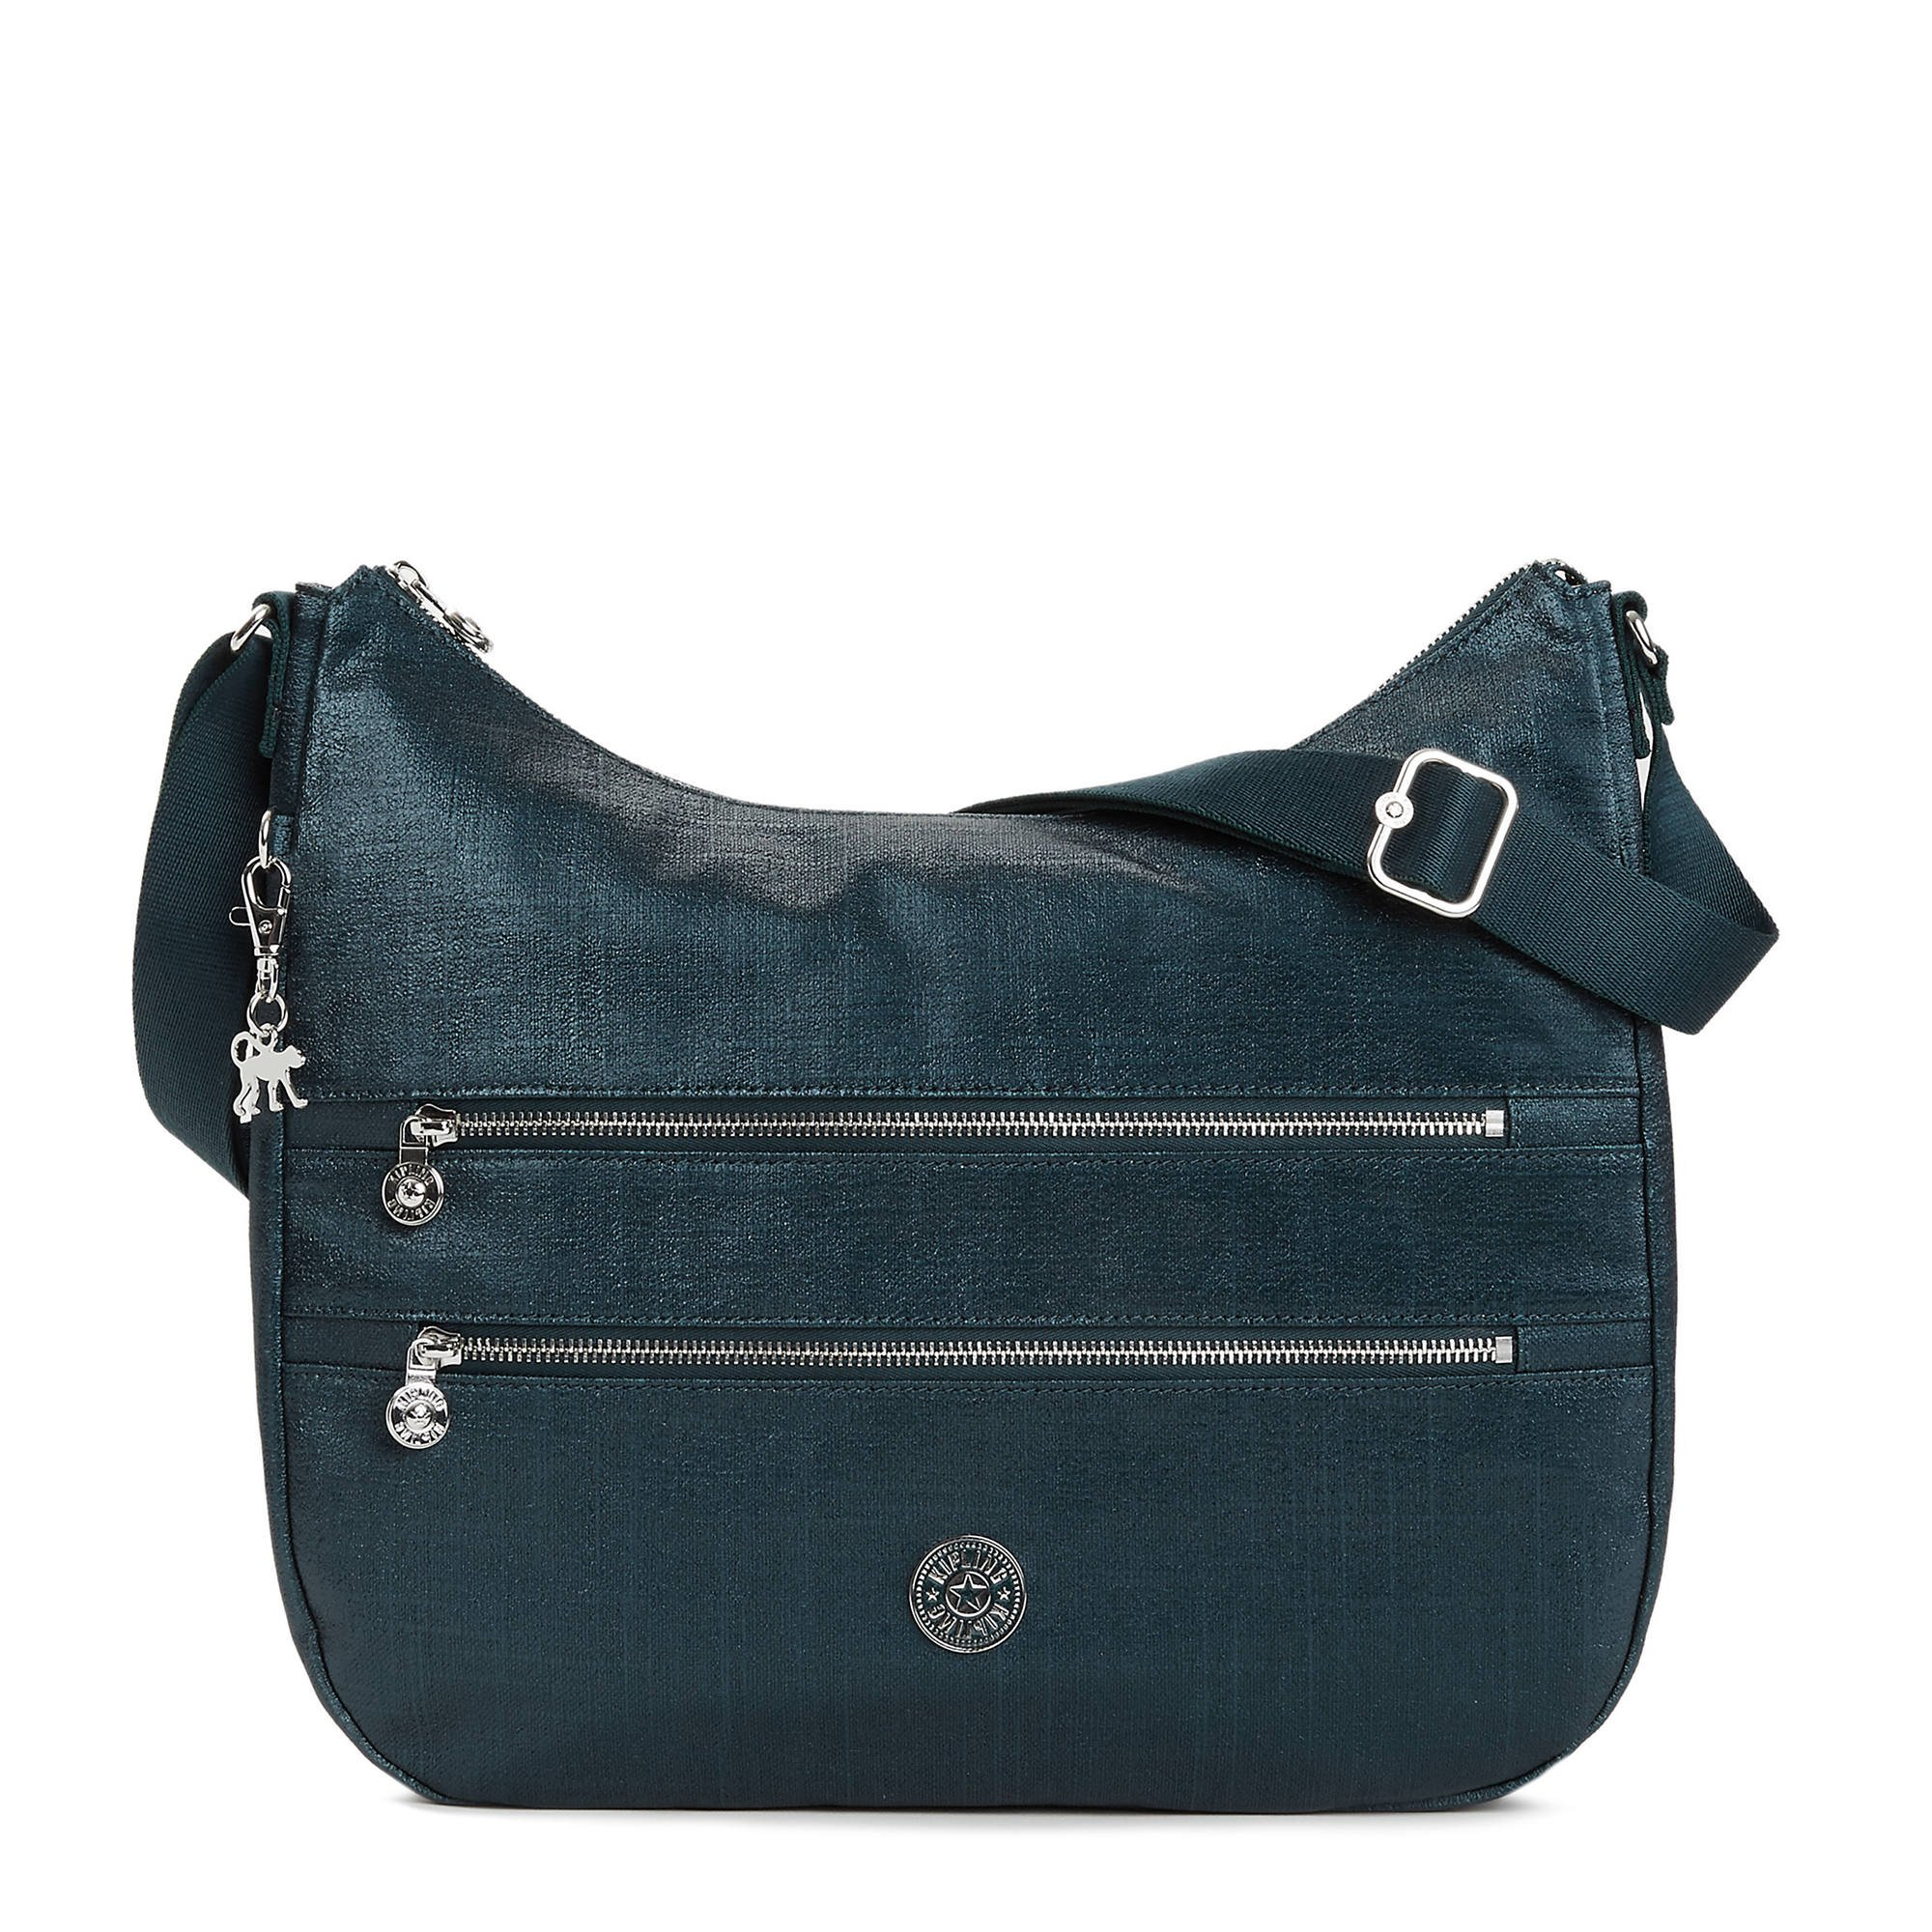 Kipling Women's Bridget Metallic Handbag One Size Blended Blue Metallic by Kipling